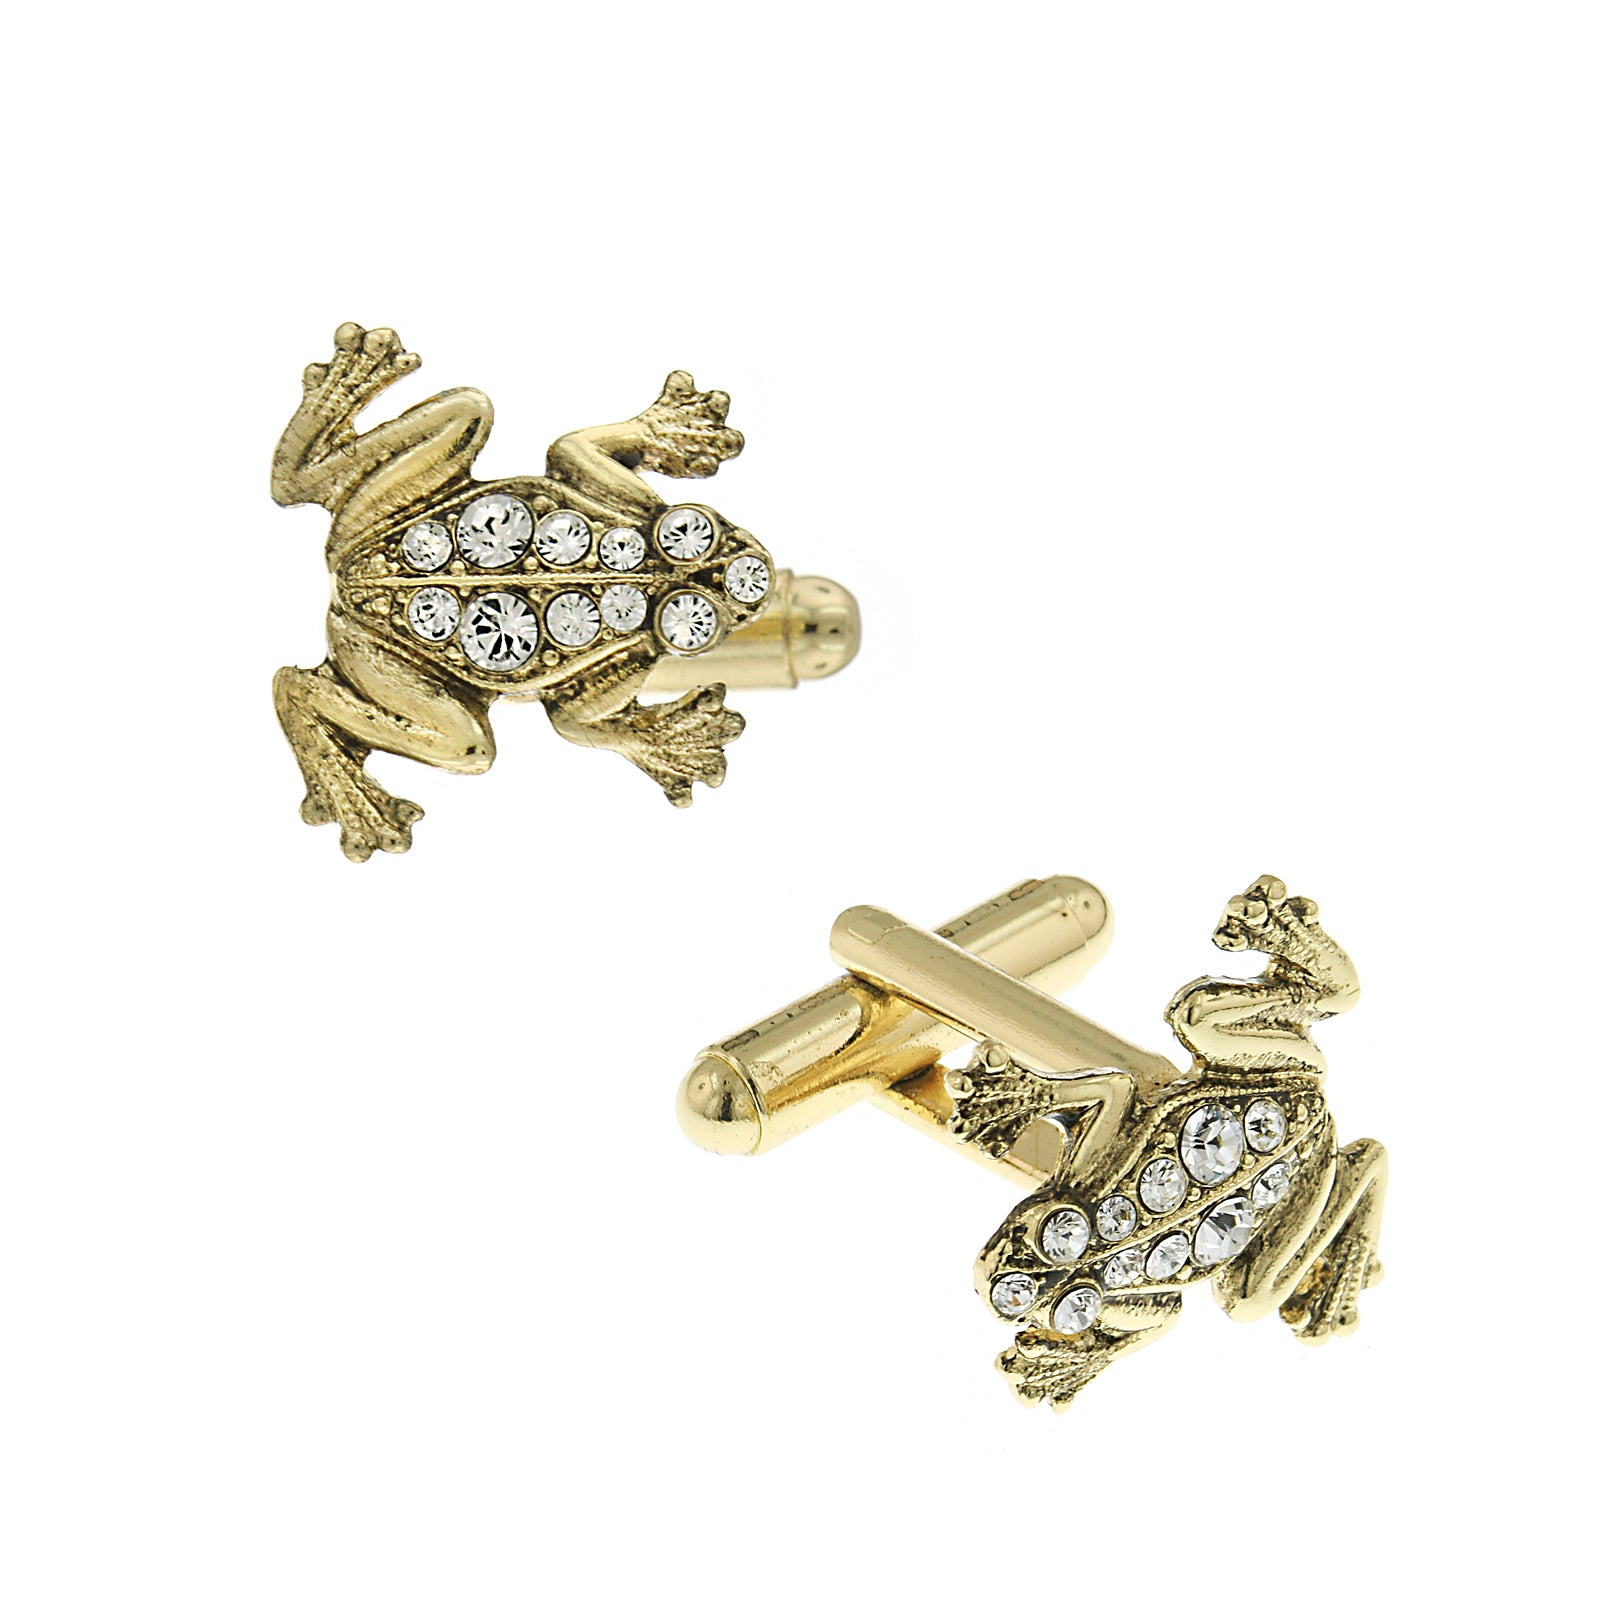 1928 Jewelry Silver-Tone White Crystal Frog Cuff Links